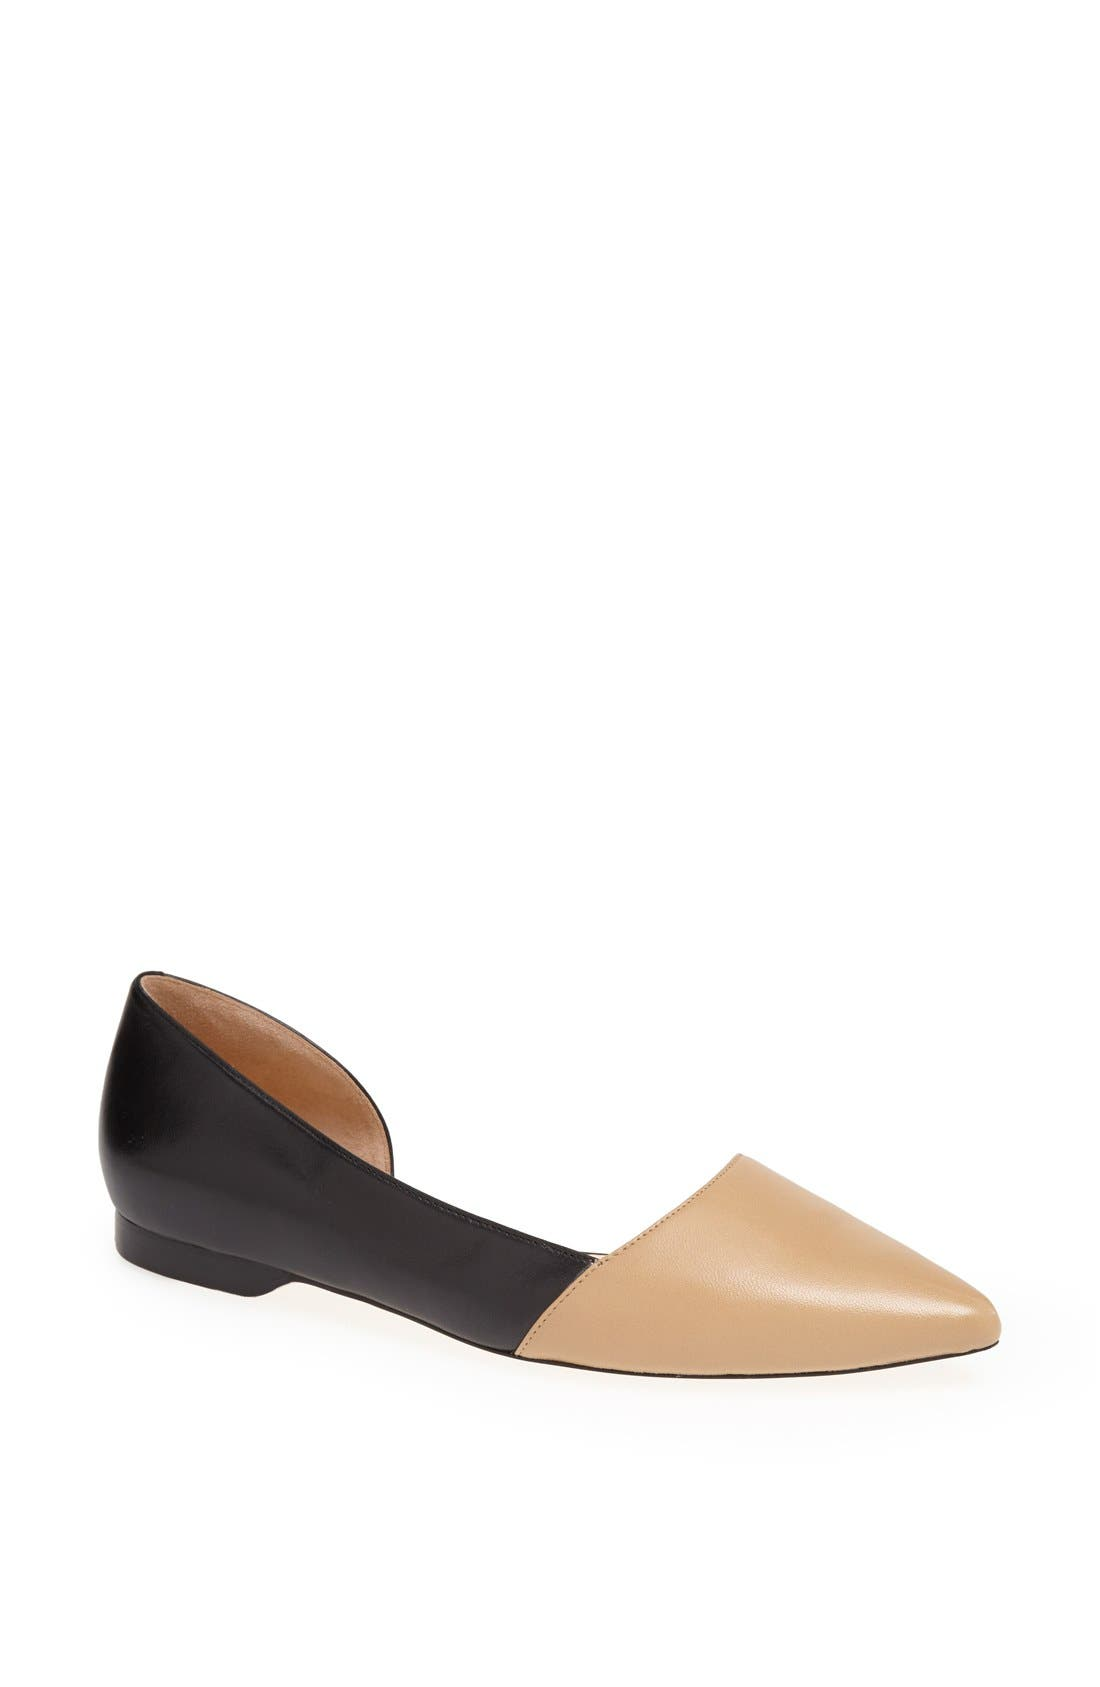 Alternate Image 1 Selected - Cole Haan 'Amalia' Half d'Orsay Skimmer Flat